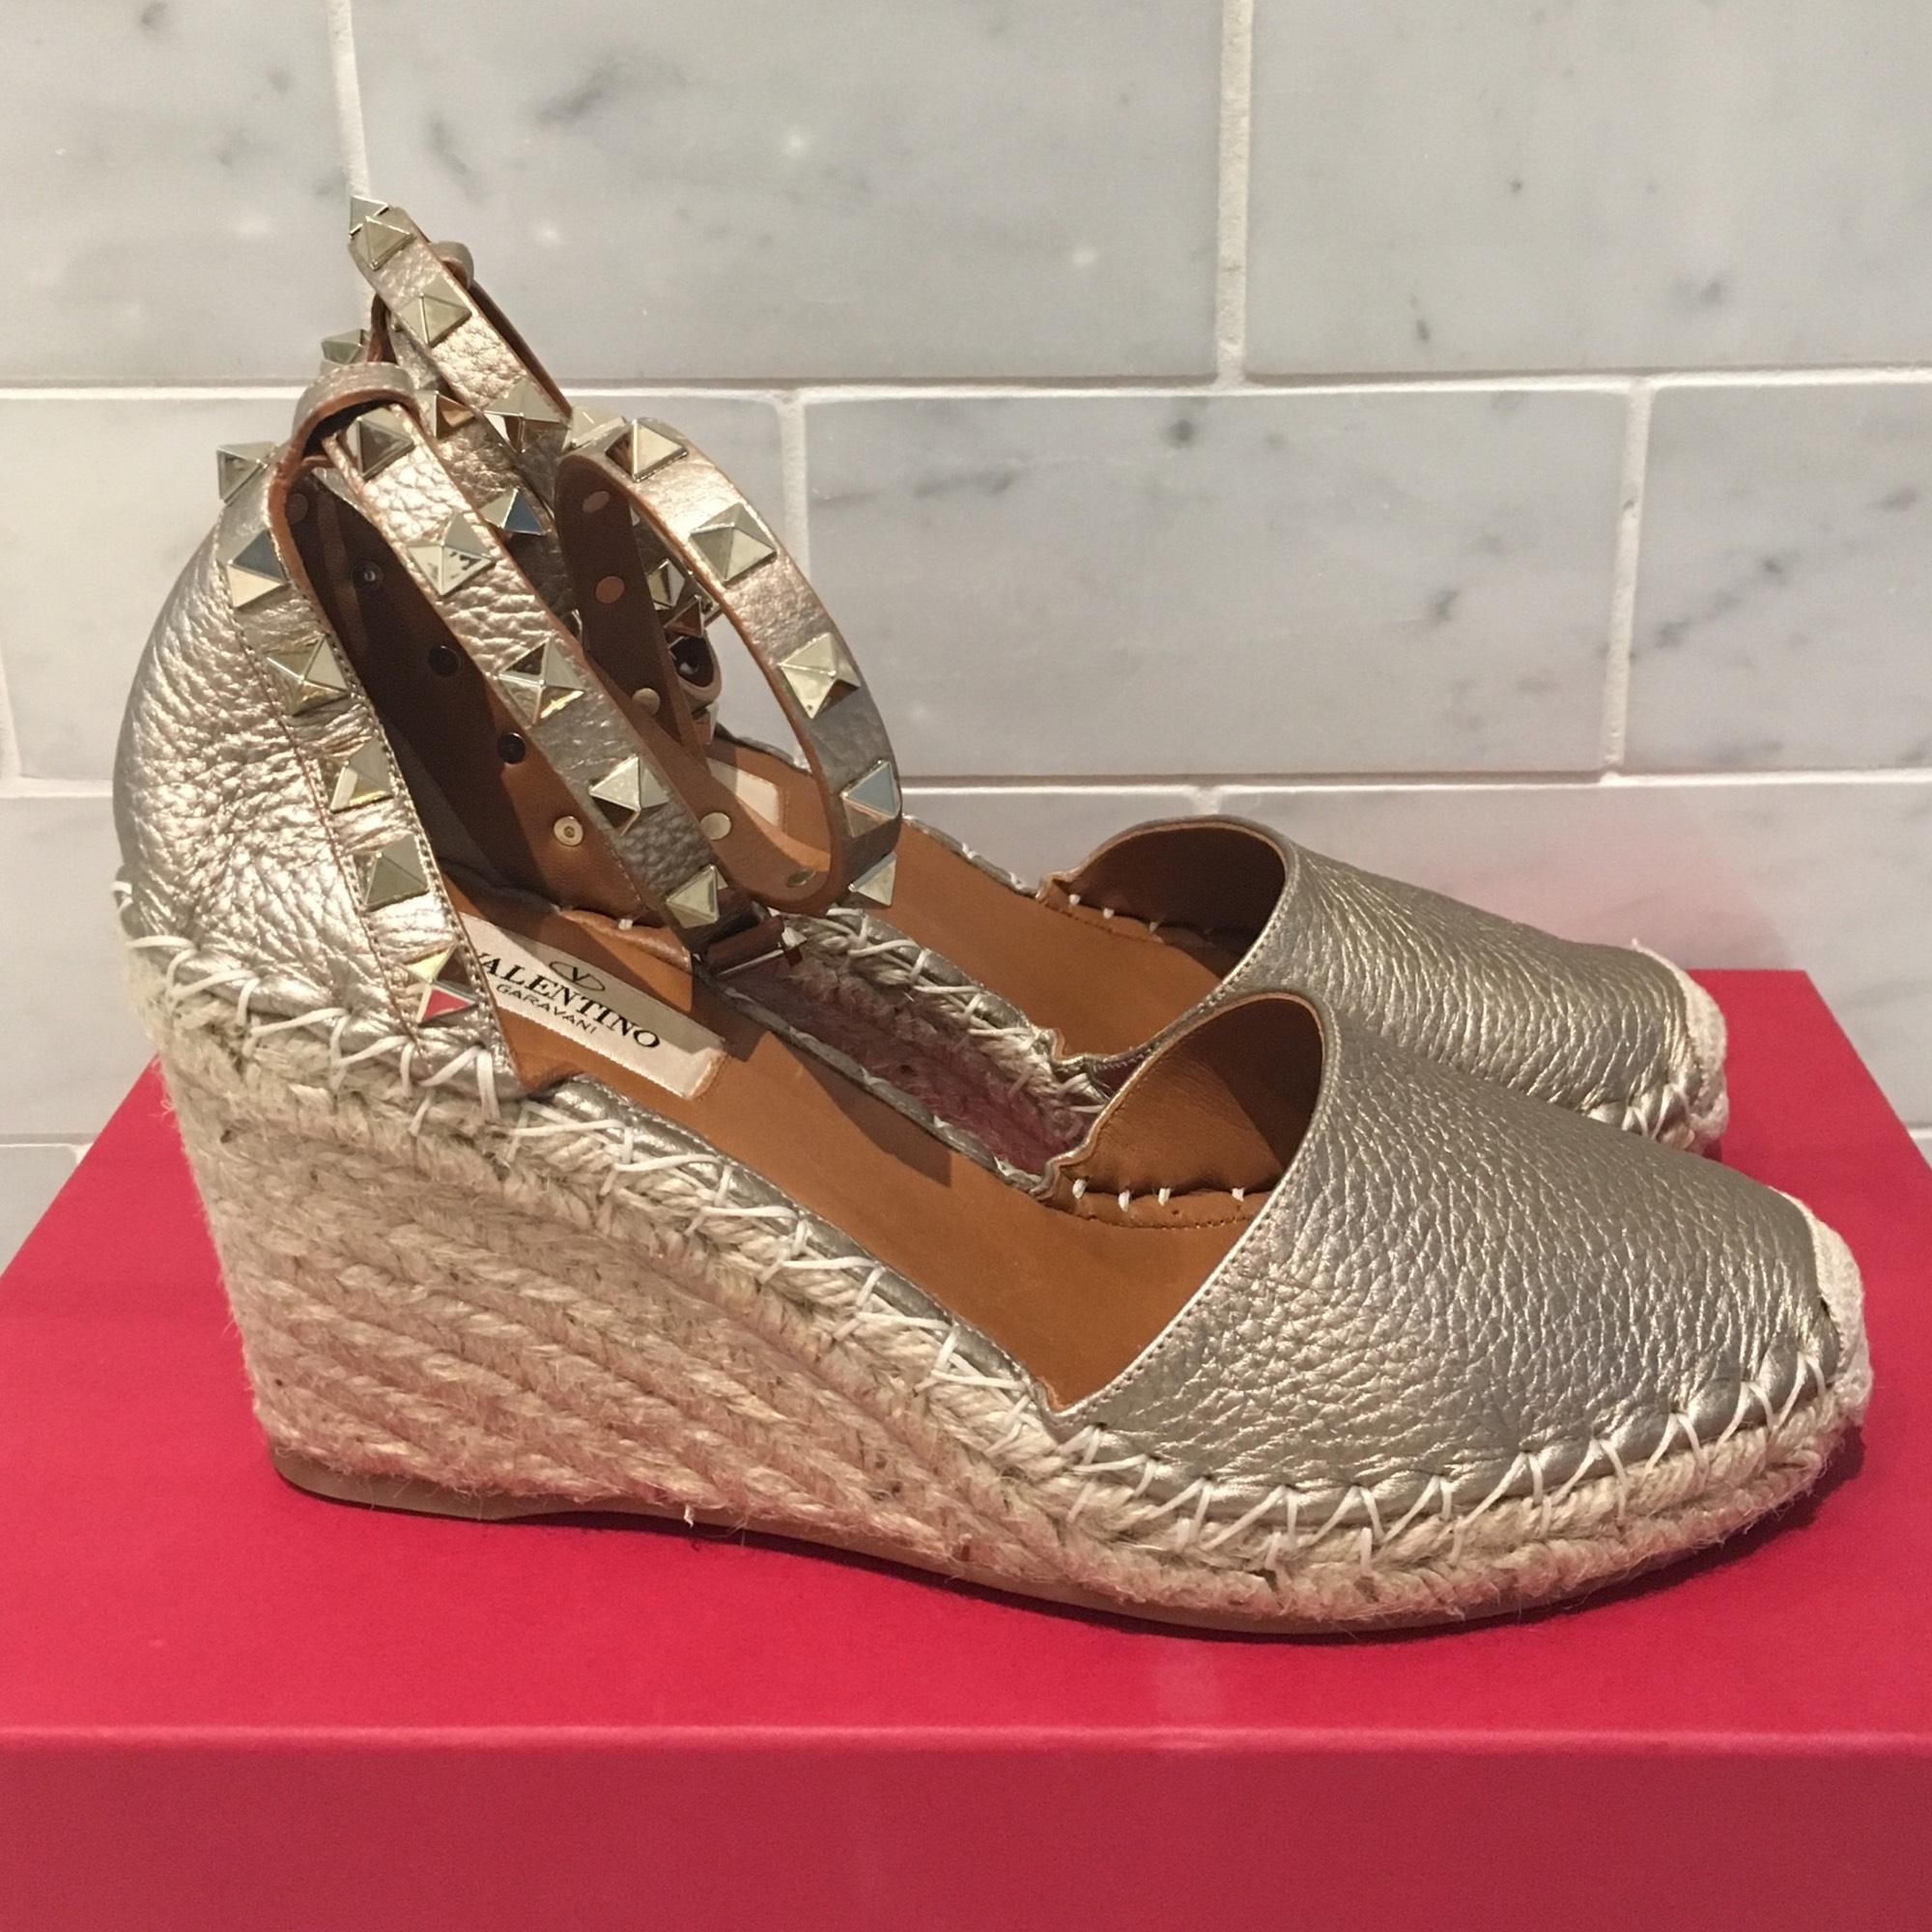 cheap enjoy clearance pre order Valentino Rosette Espadrille Wedges for cheap for sale cheap 2014 newest best seller LO01nLw